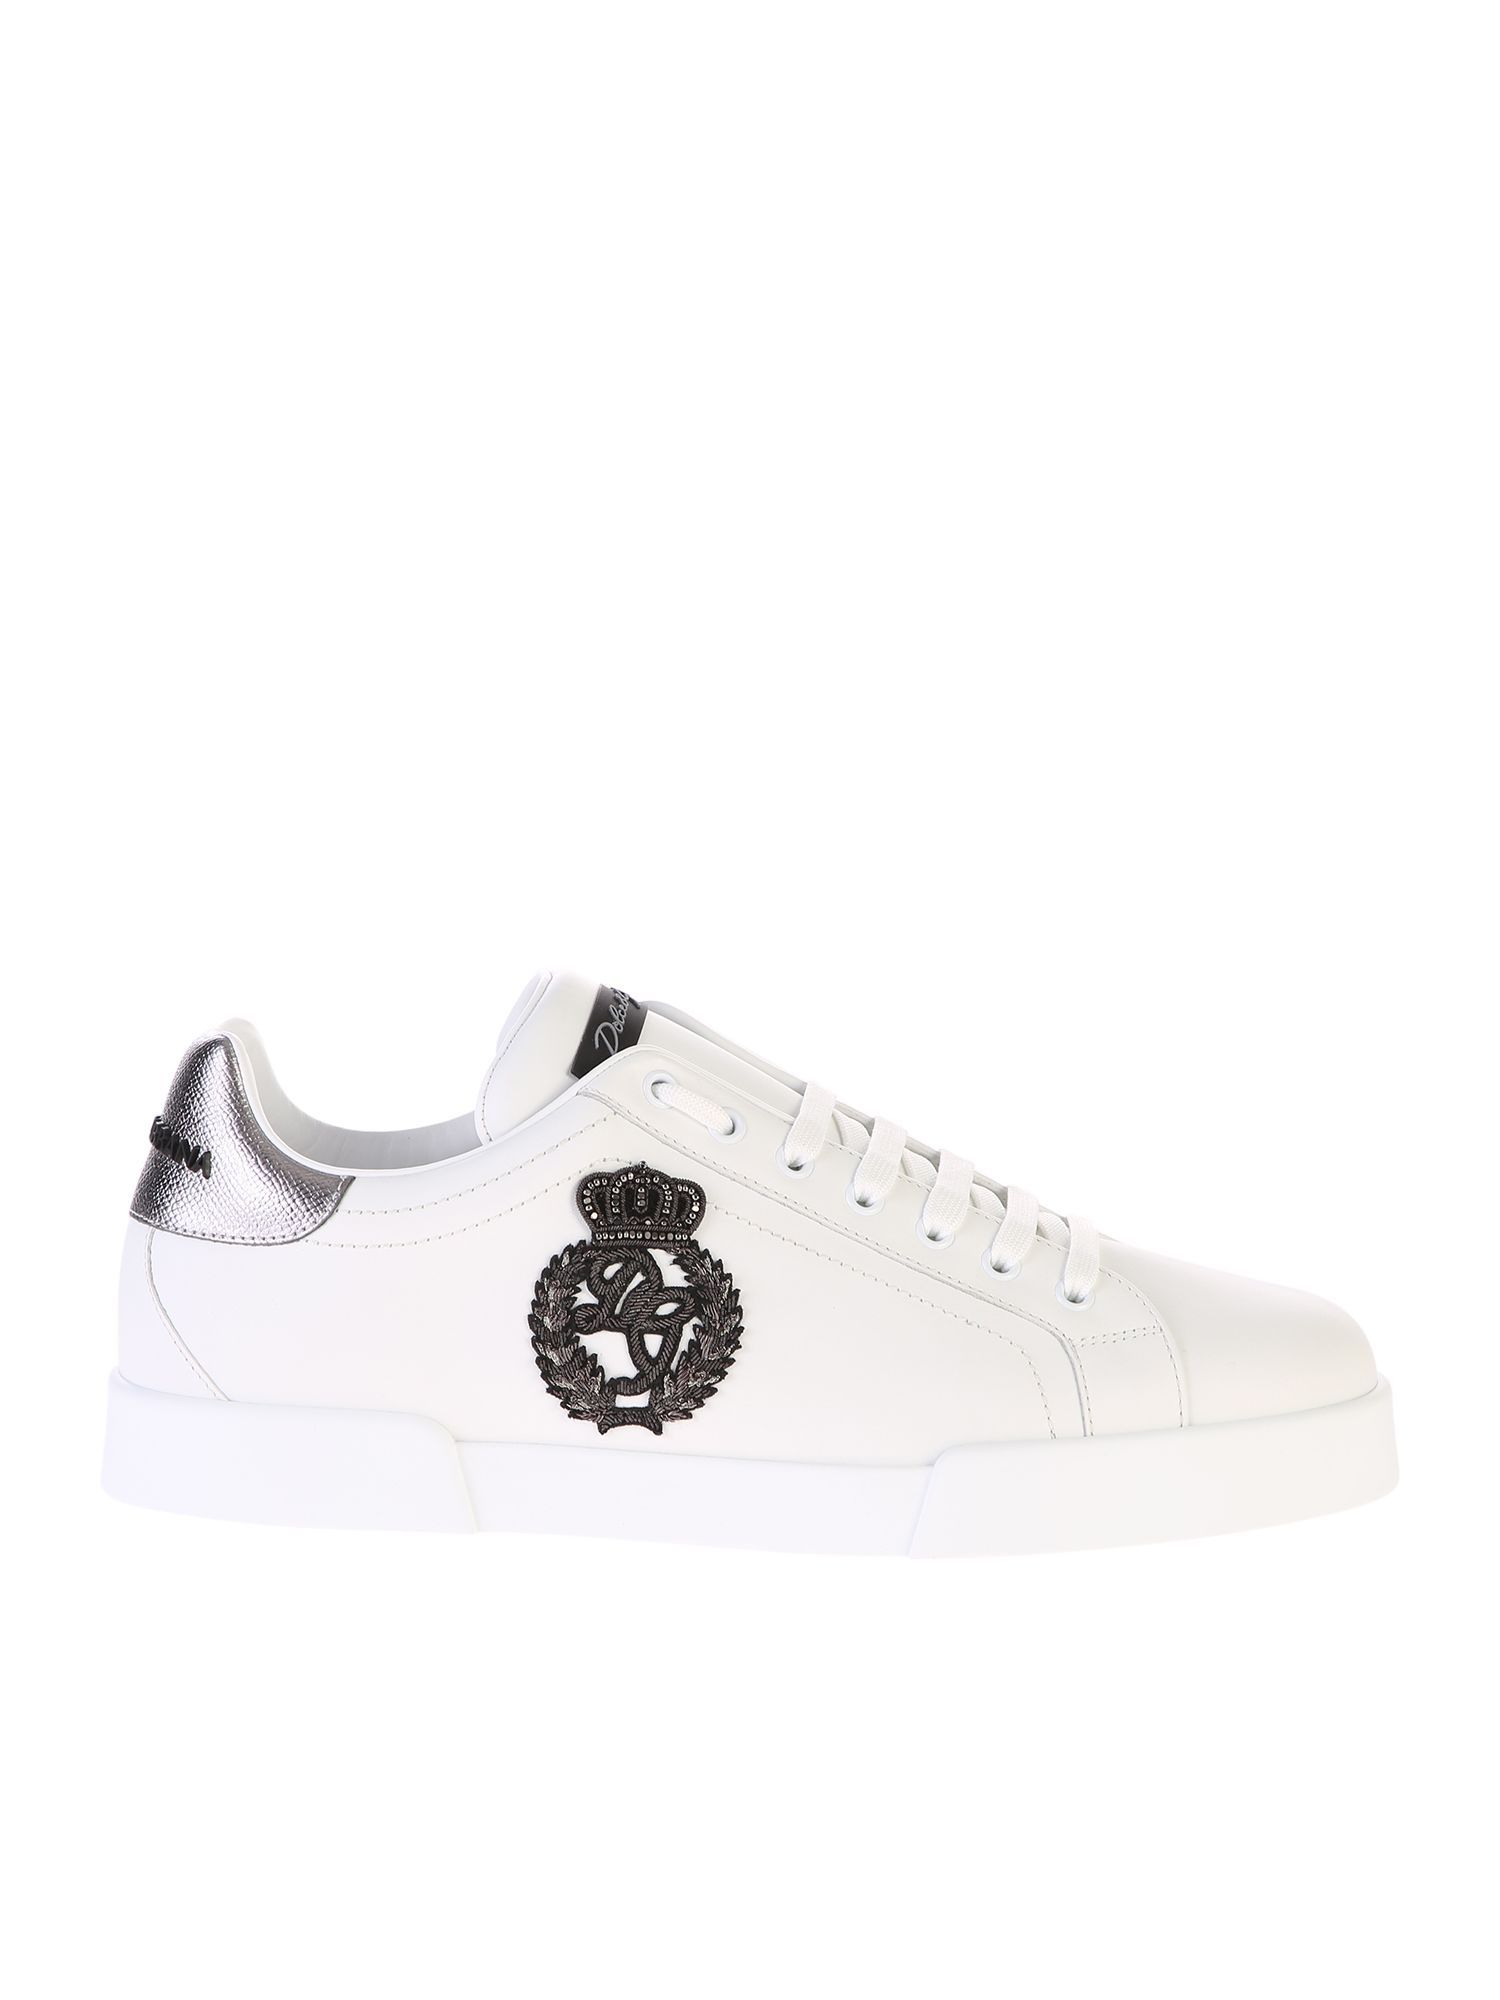 1b3721bfaf695 DOLCE   GABBANA EMBROIDERED LEATHER SNEAKERS.  dolcegabbana  shoes ...